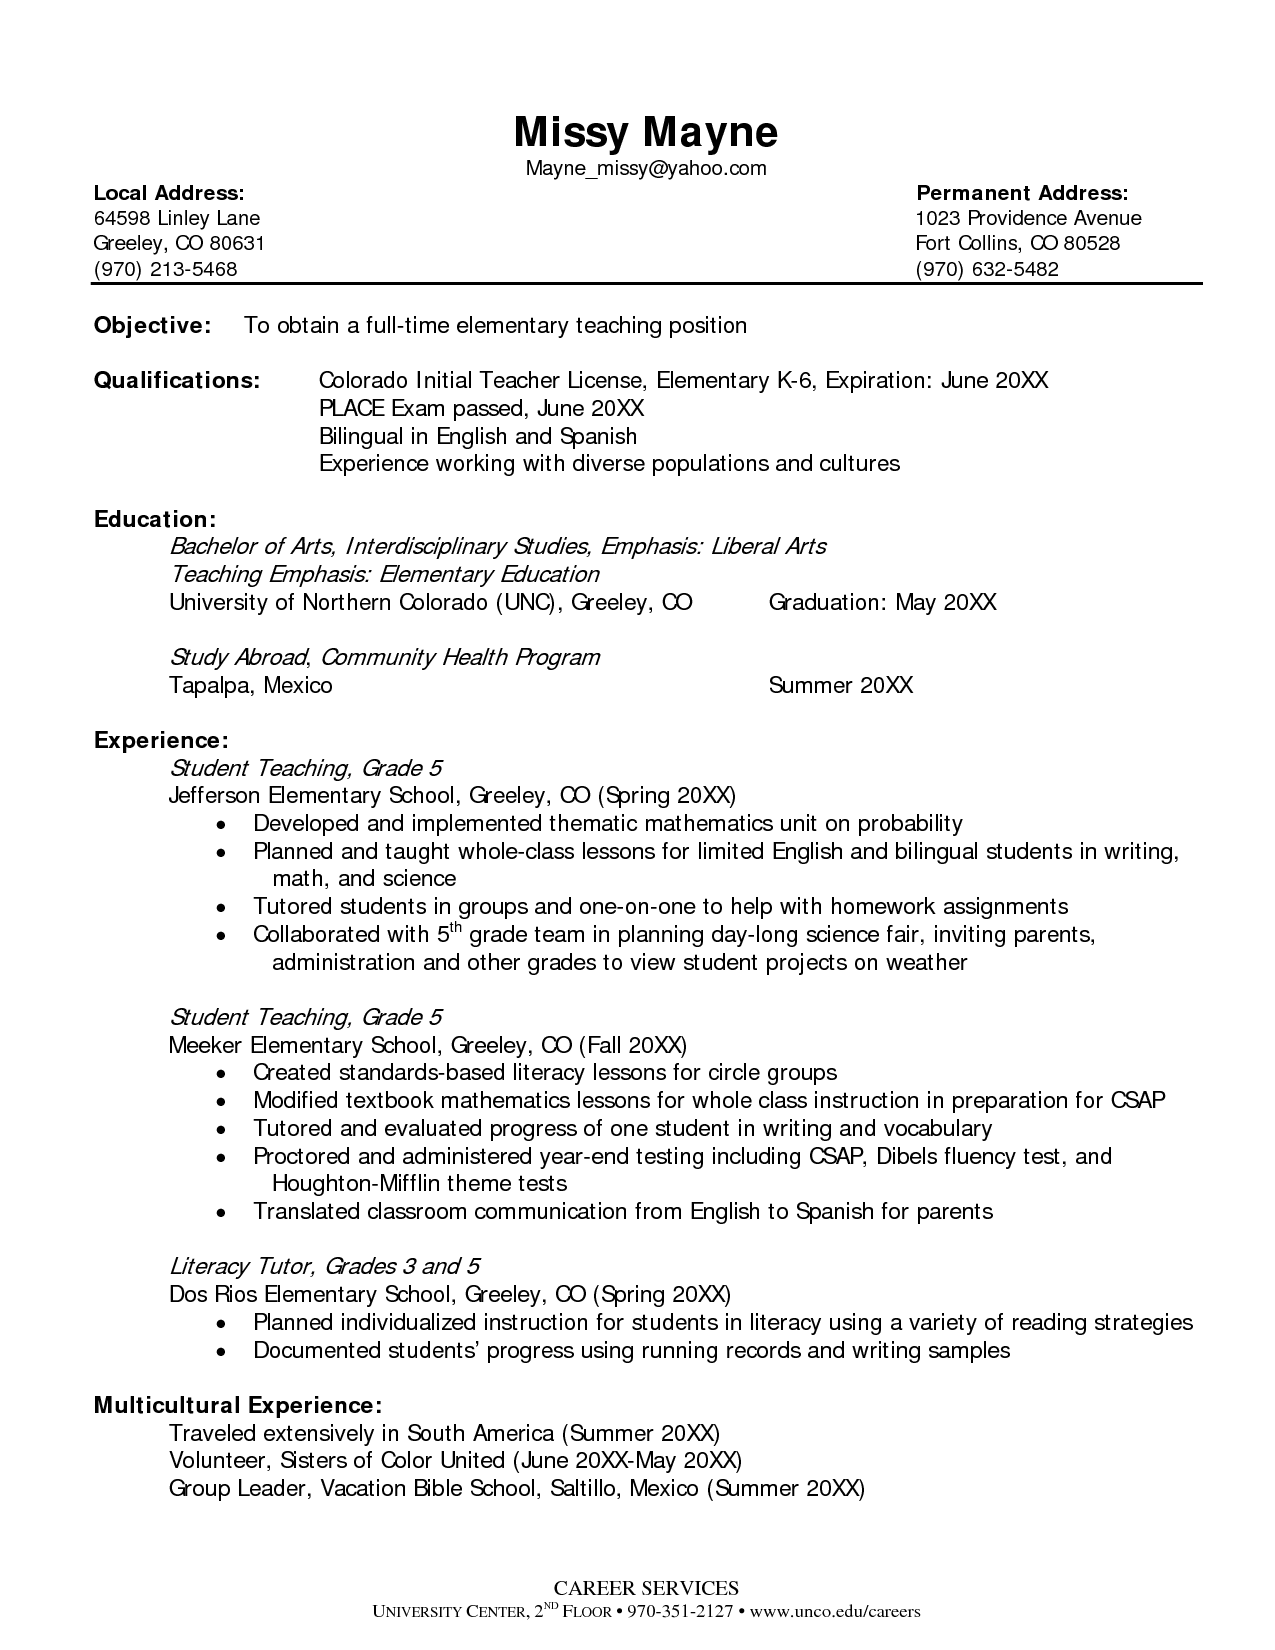 resume objective statement examples for teachers example simple elementary teacher template with